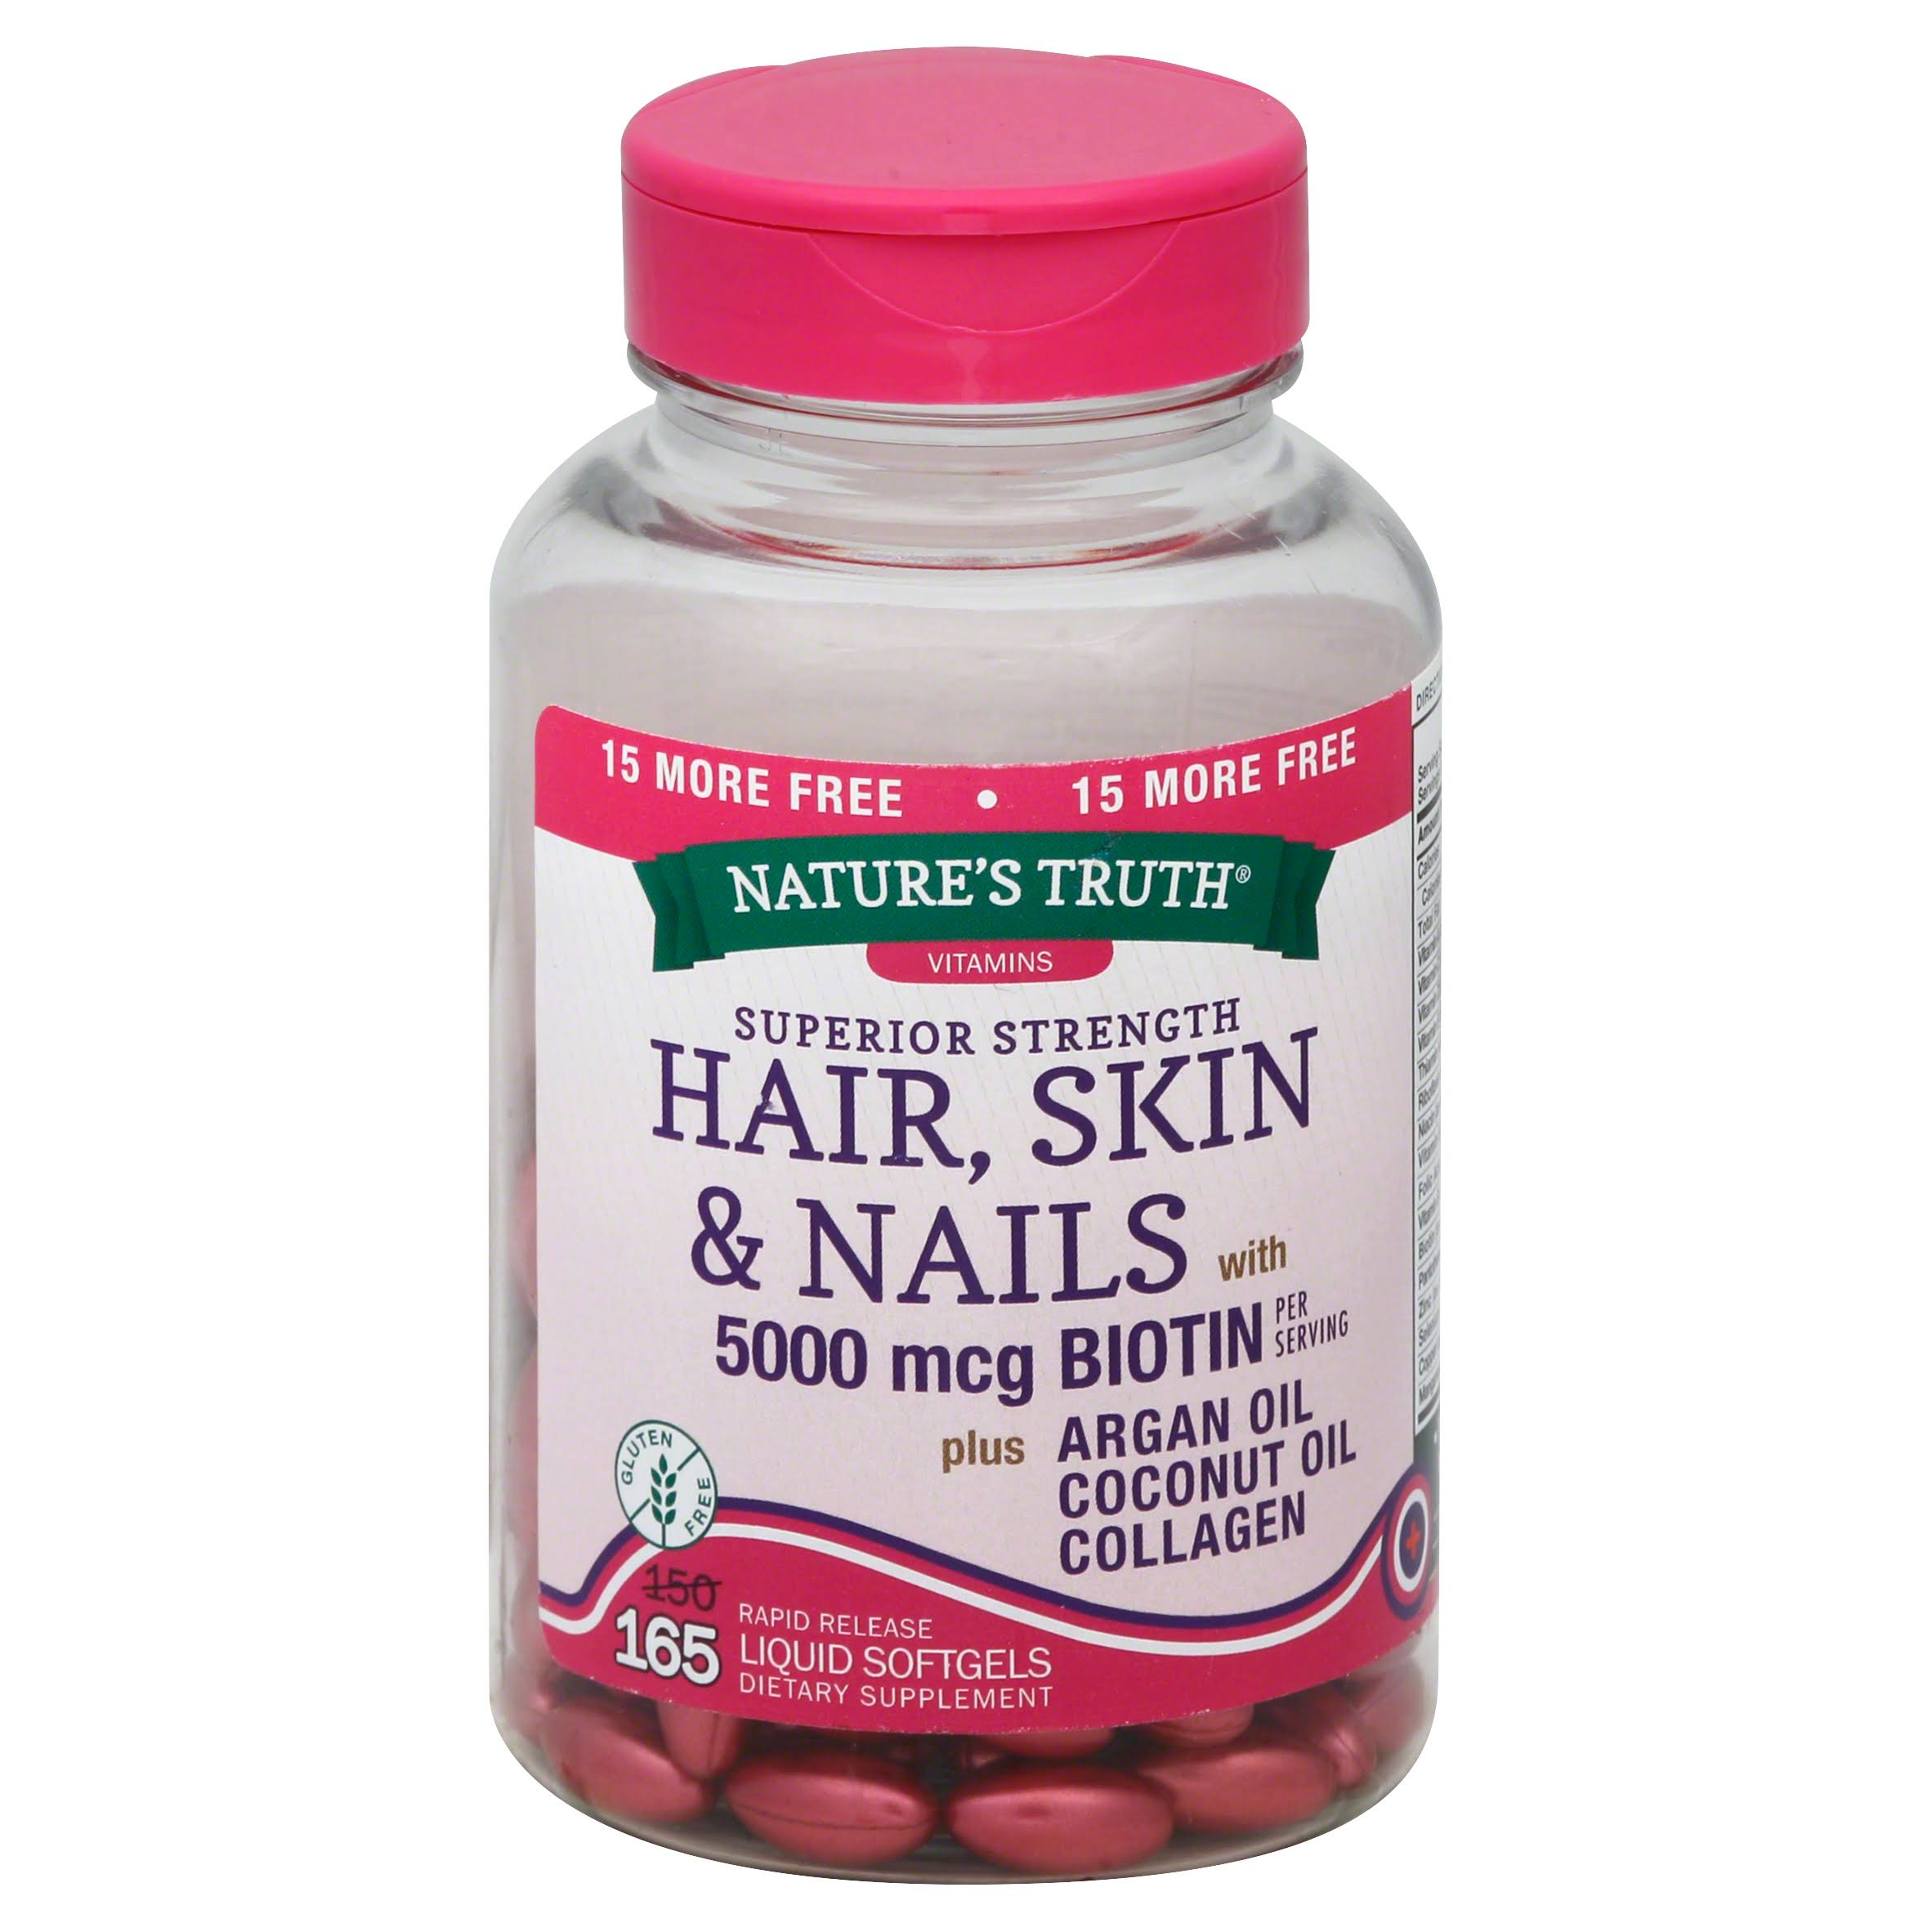 Nature's Truth Hair Skin & Nails Supplement - 500mcg, 165 Liquid Softgels